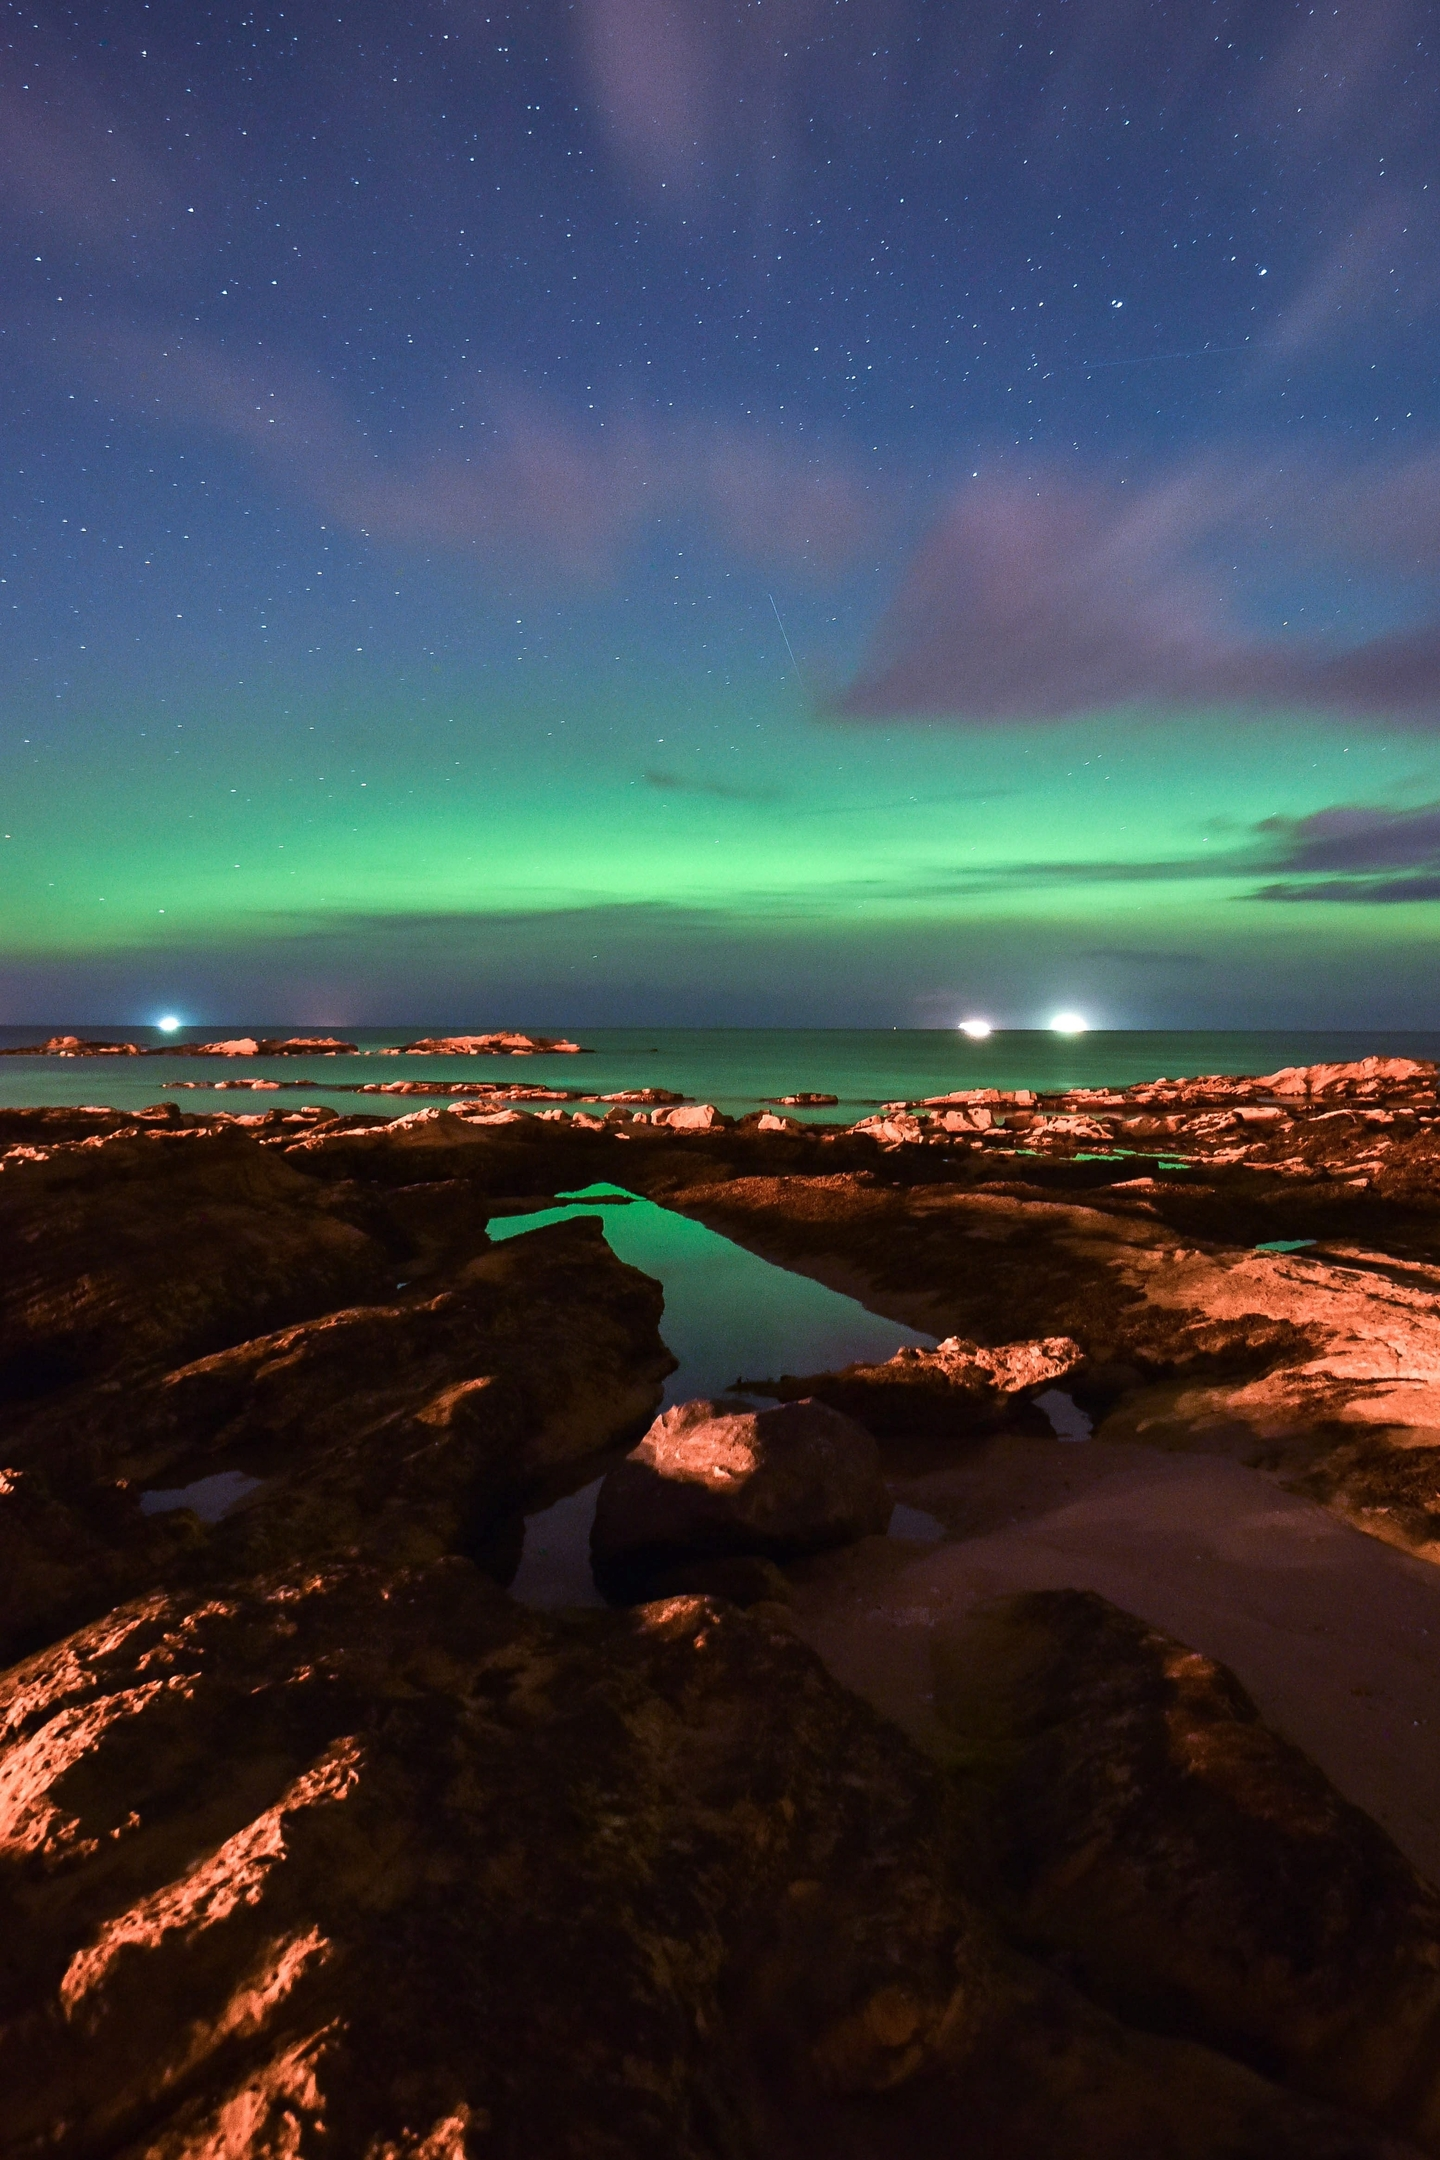 Compose your shot. Remember that the northern lights need scale and context, so include the foreground in your shot. This can be a tree, a building, a car or even just the horizon.